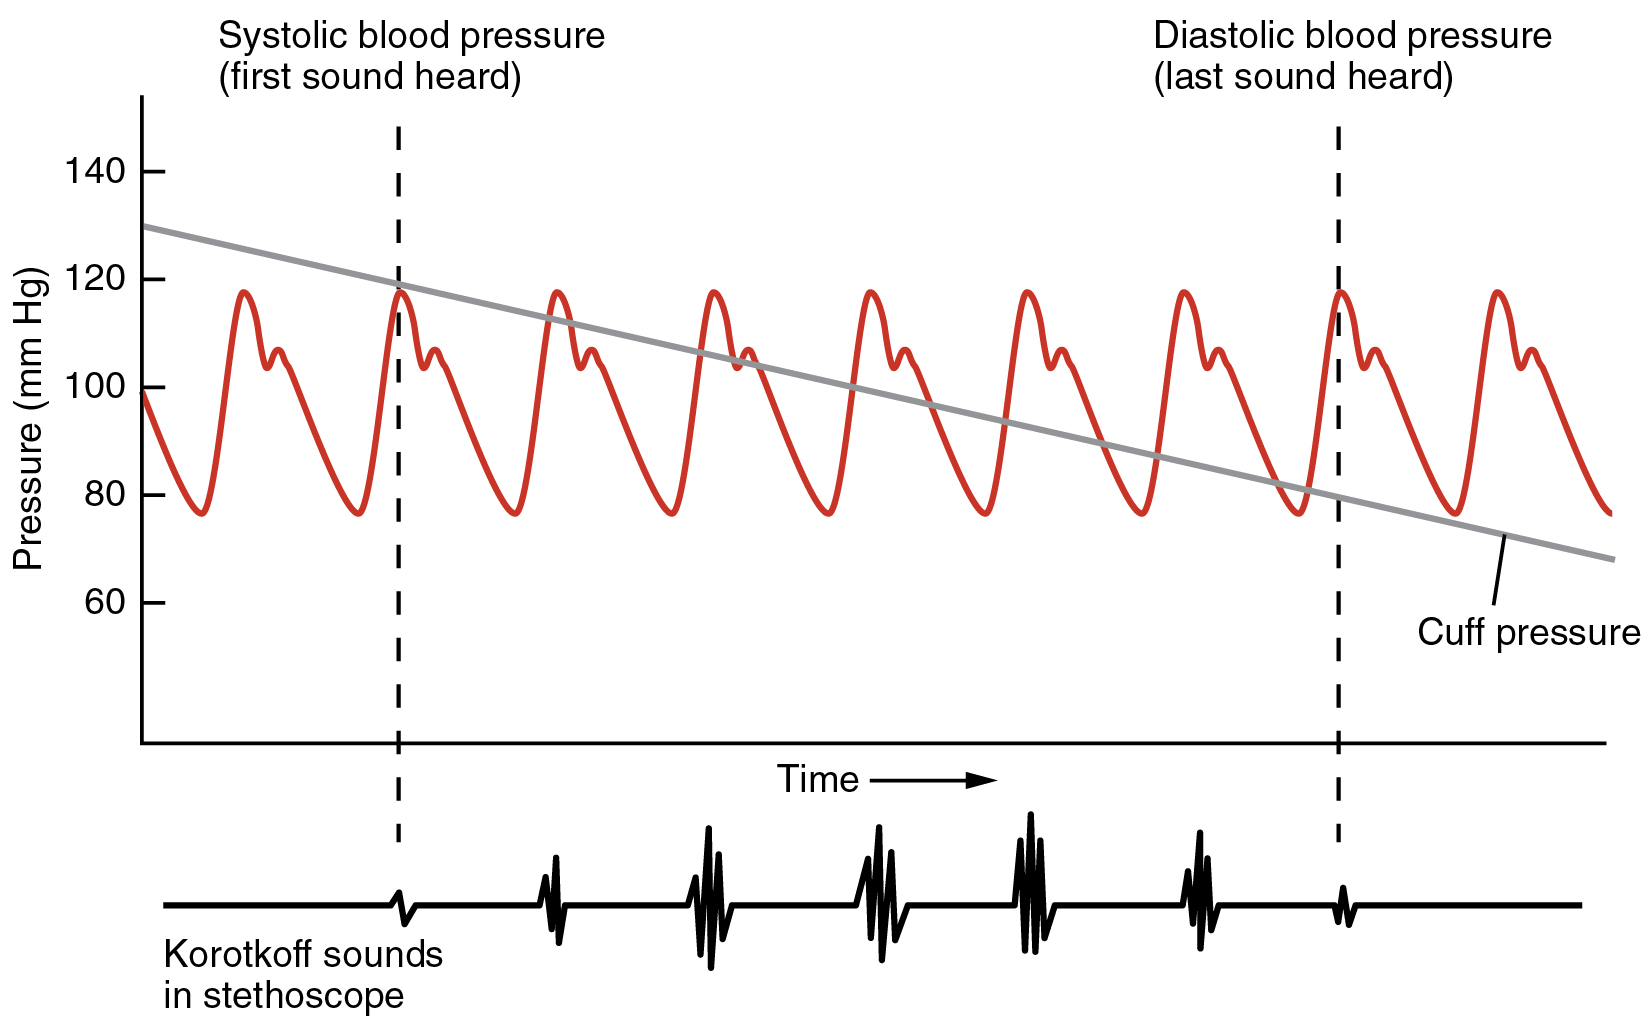 This Image Shows Blood Pressure As A Function Of Time